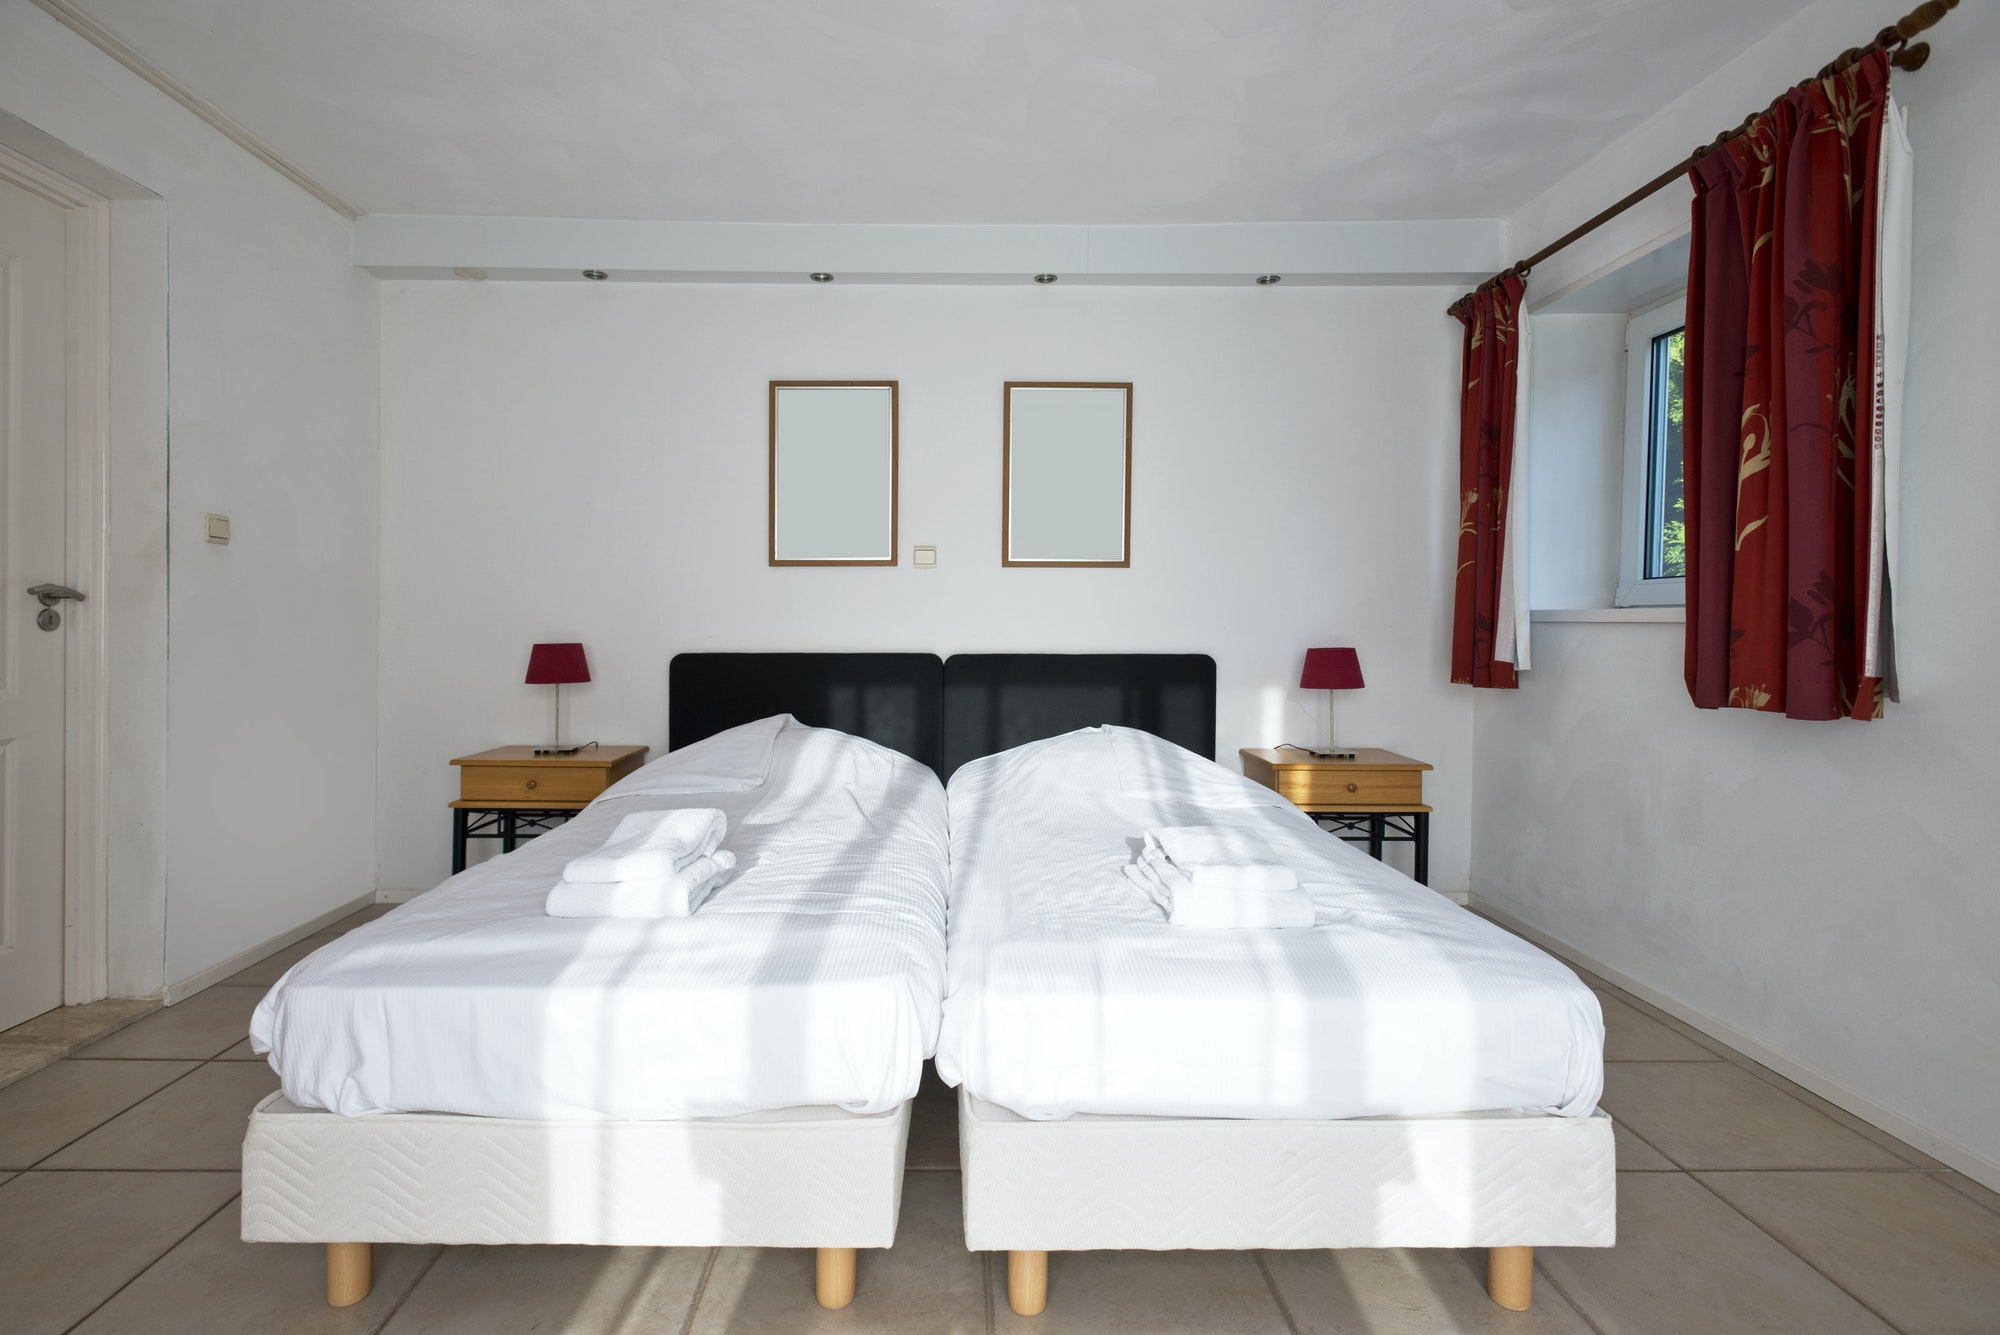 Two Twin Mattresses Equal A King Size, What Size Sheets For 2 Twin Xl Beds Pushed Together